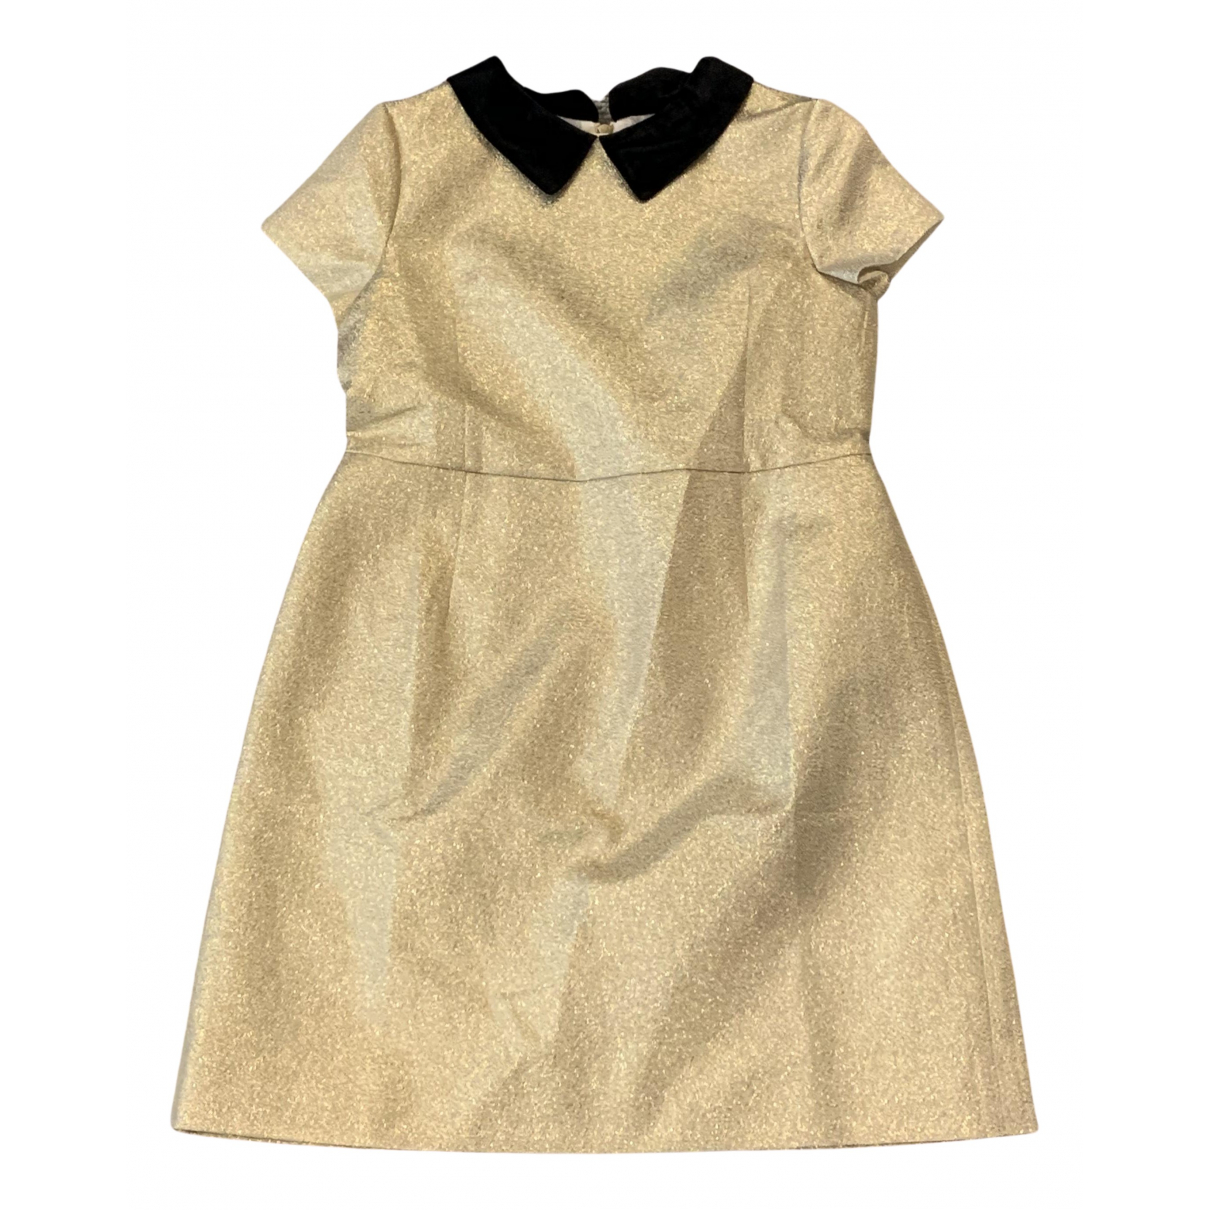 Bonpoint \N Kleid in  Beige Polyester